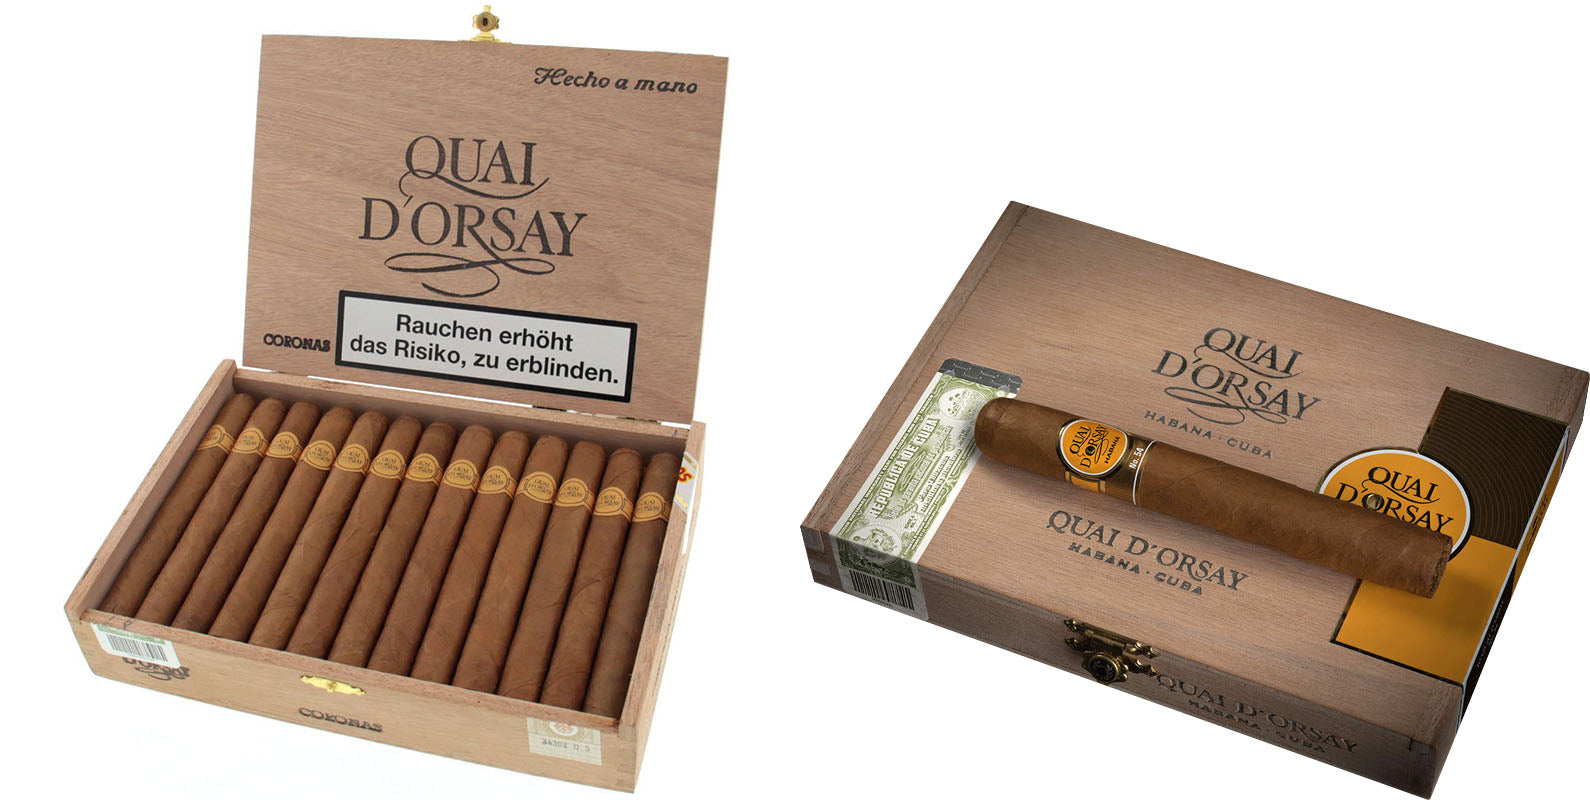 quai d orsay coronas claro cigars no. 54 cigar and quai d orsay EGM Cigars